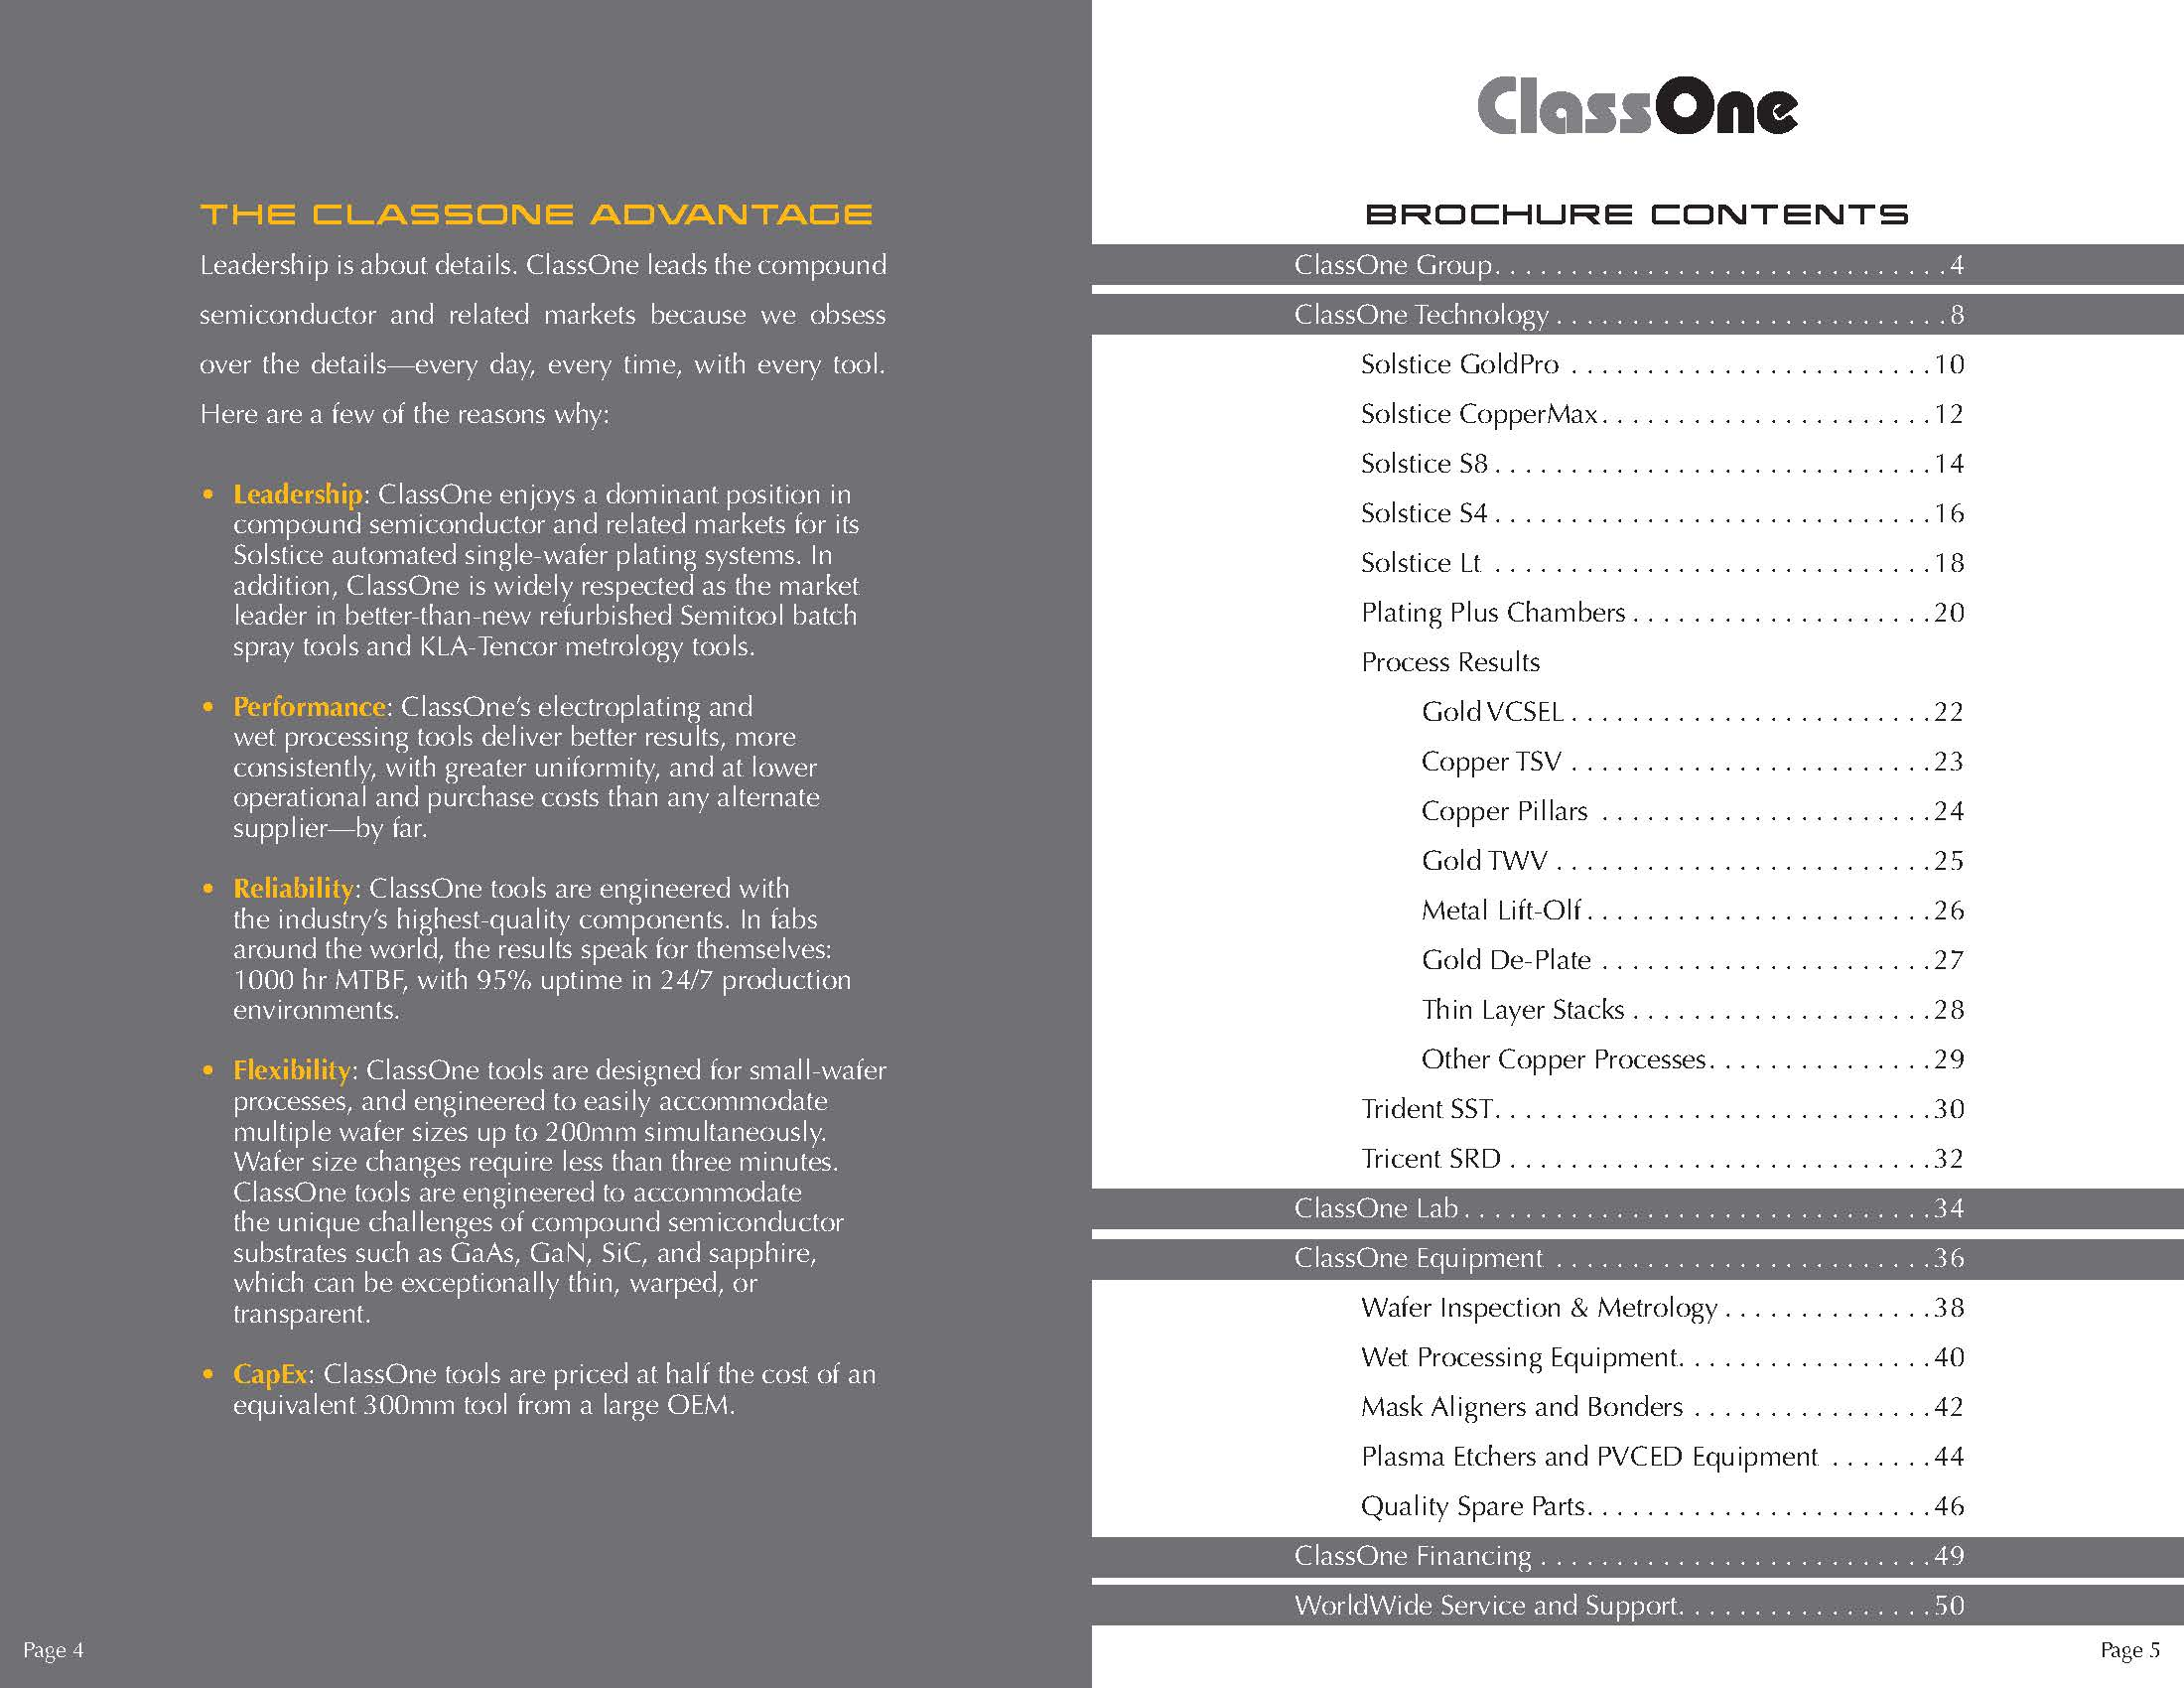 ClassOne Booklet v1_Page_03.jpg